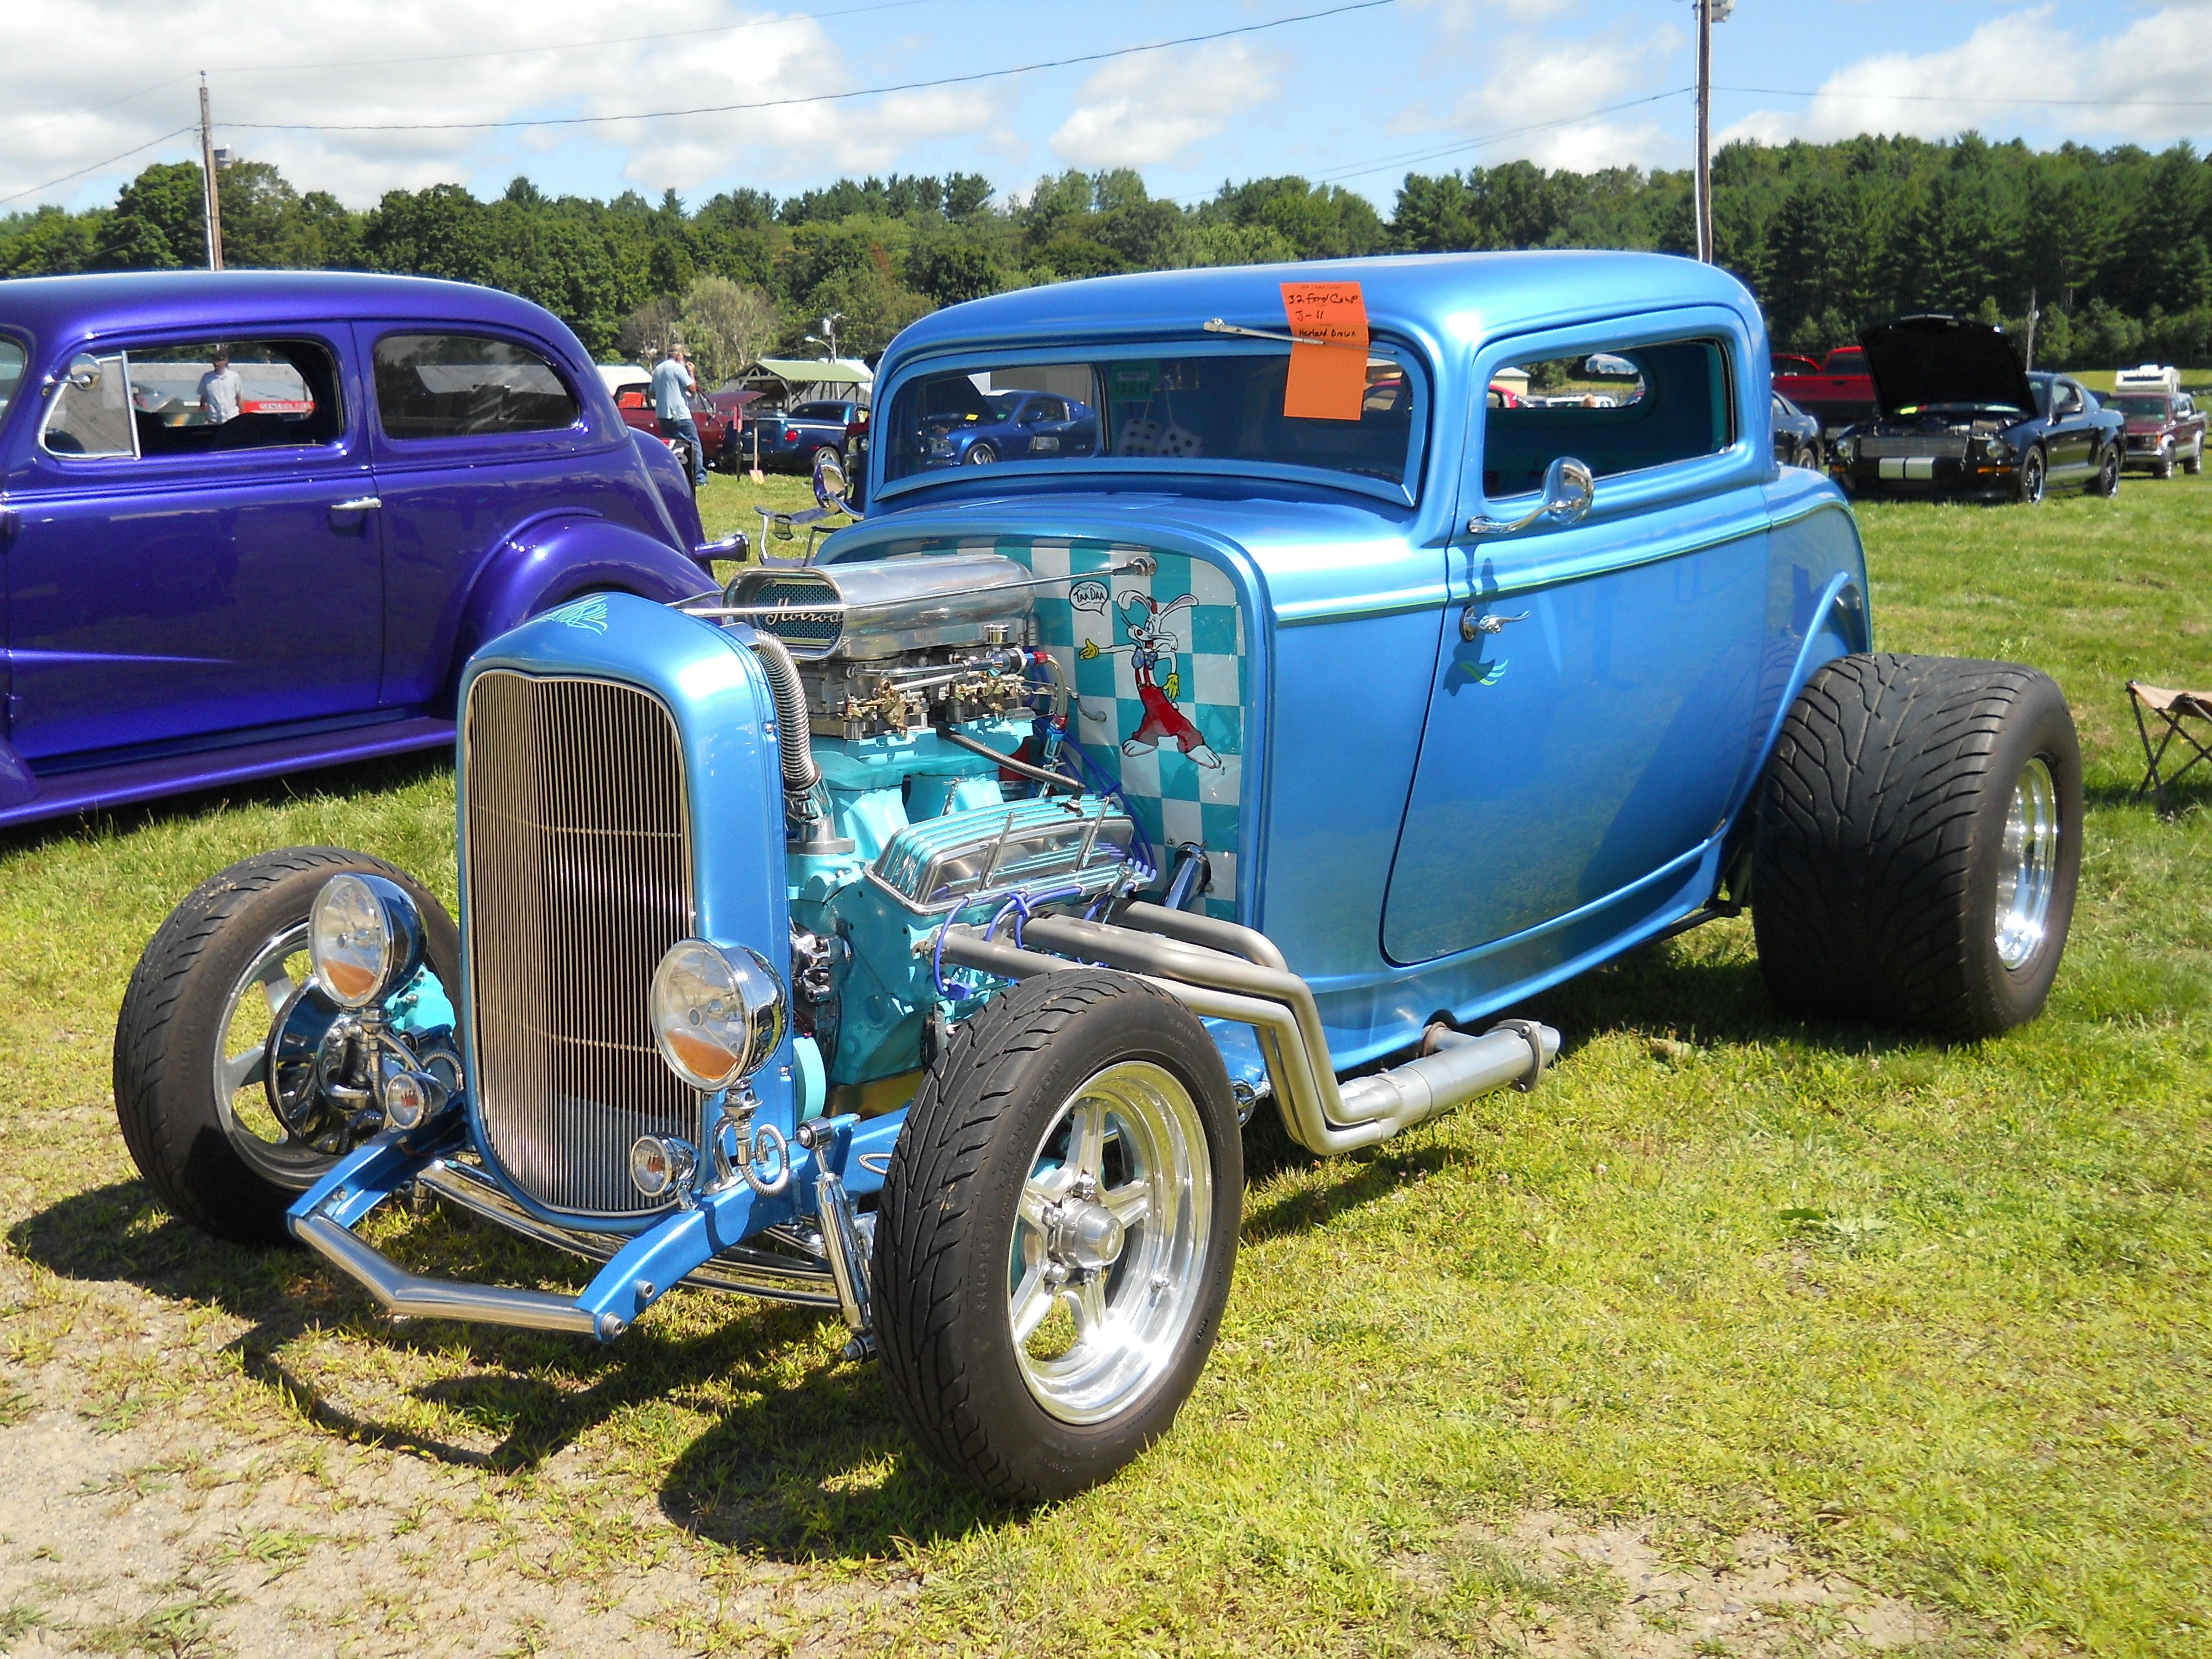 1932 Ford Coupe full of Cartoon characters